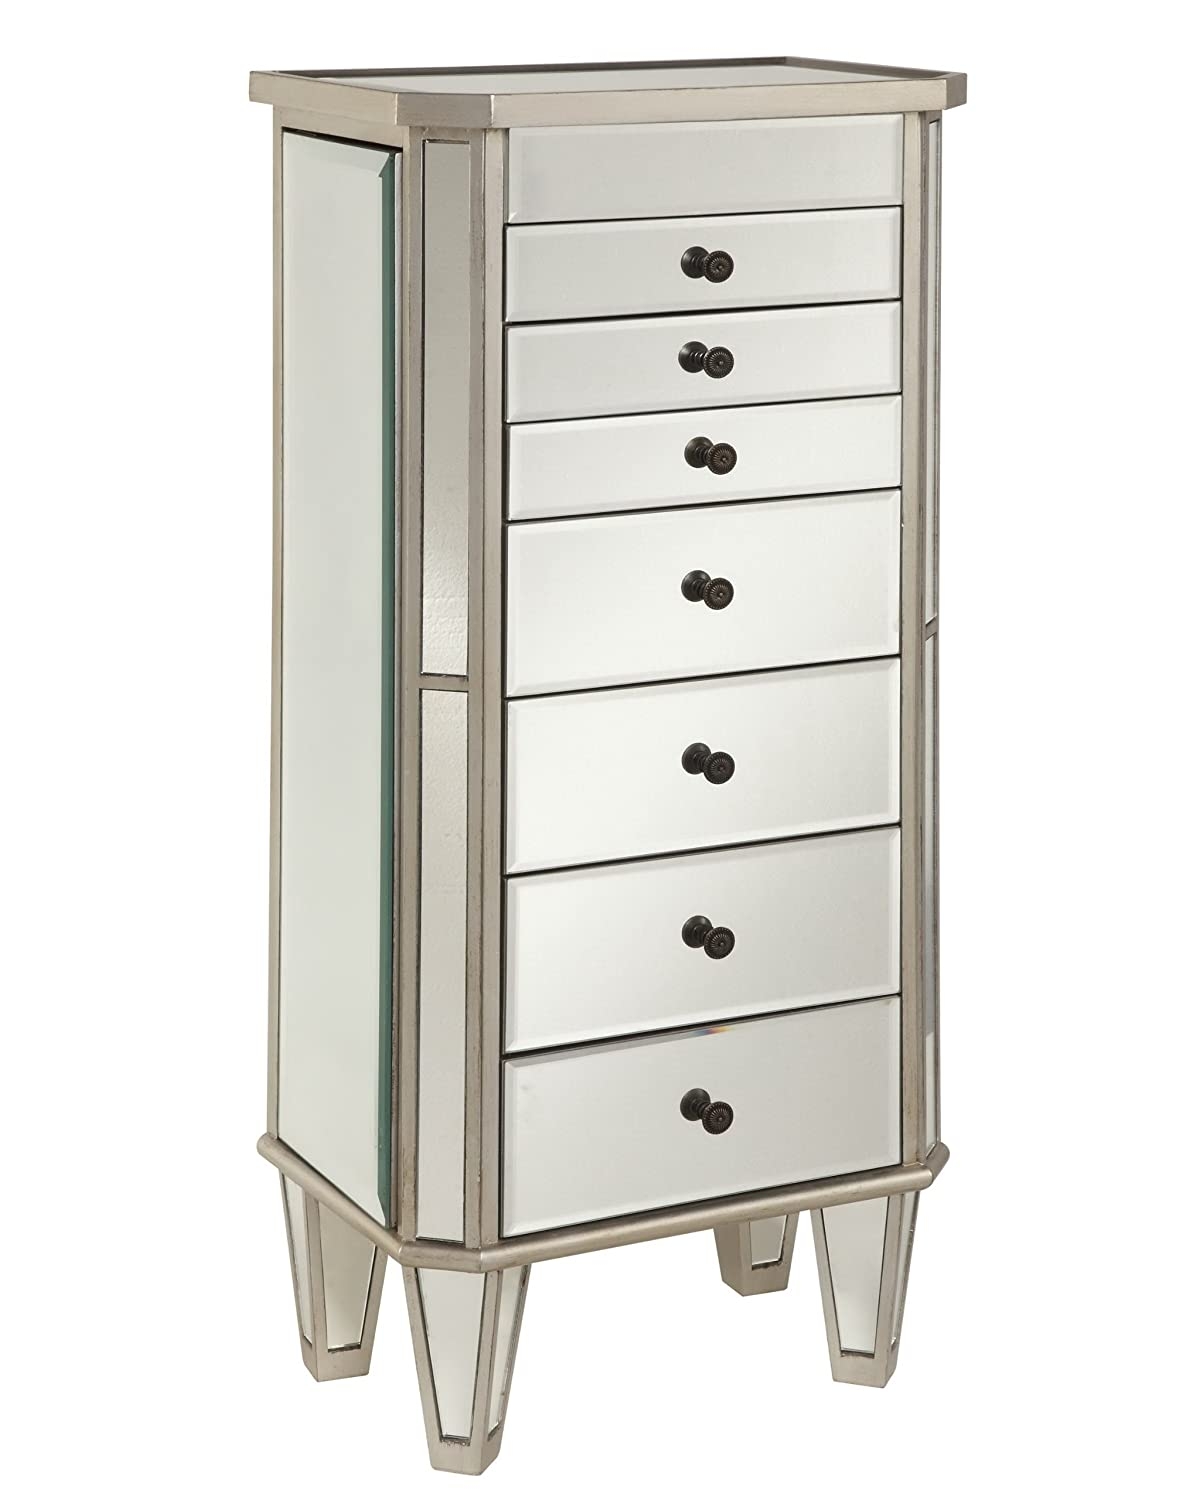 Merveilleux Amazon.com: Powell Mirrored Jewelry Armoire With Silver Wood: Kitchen U0026  Dining